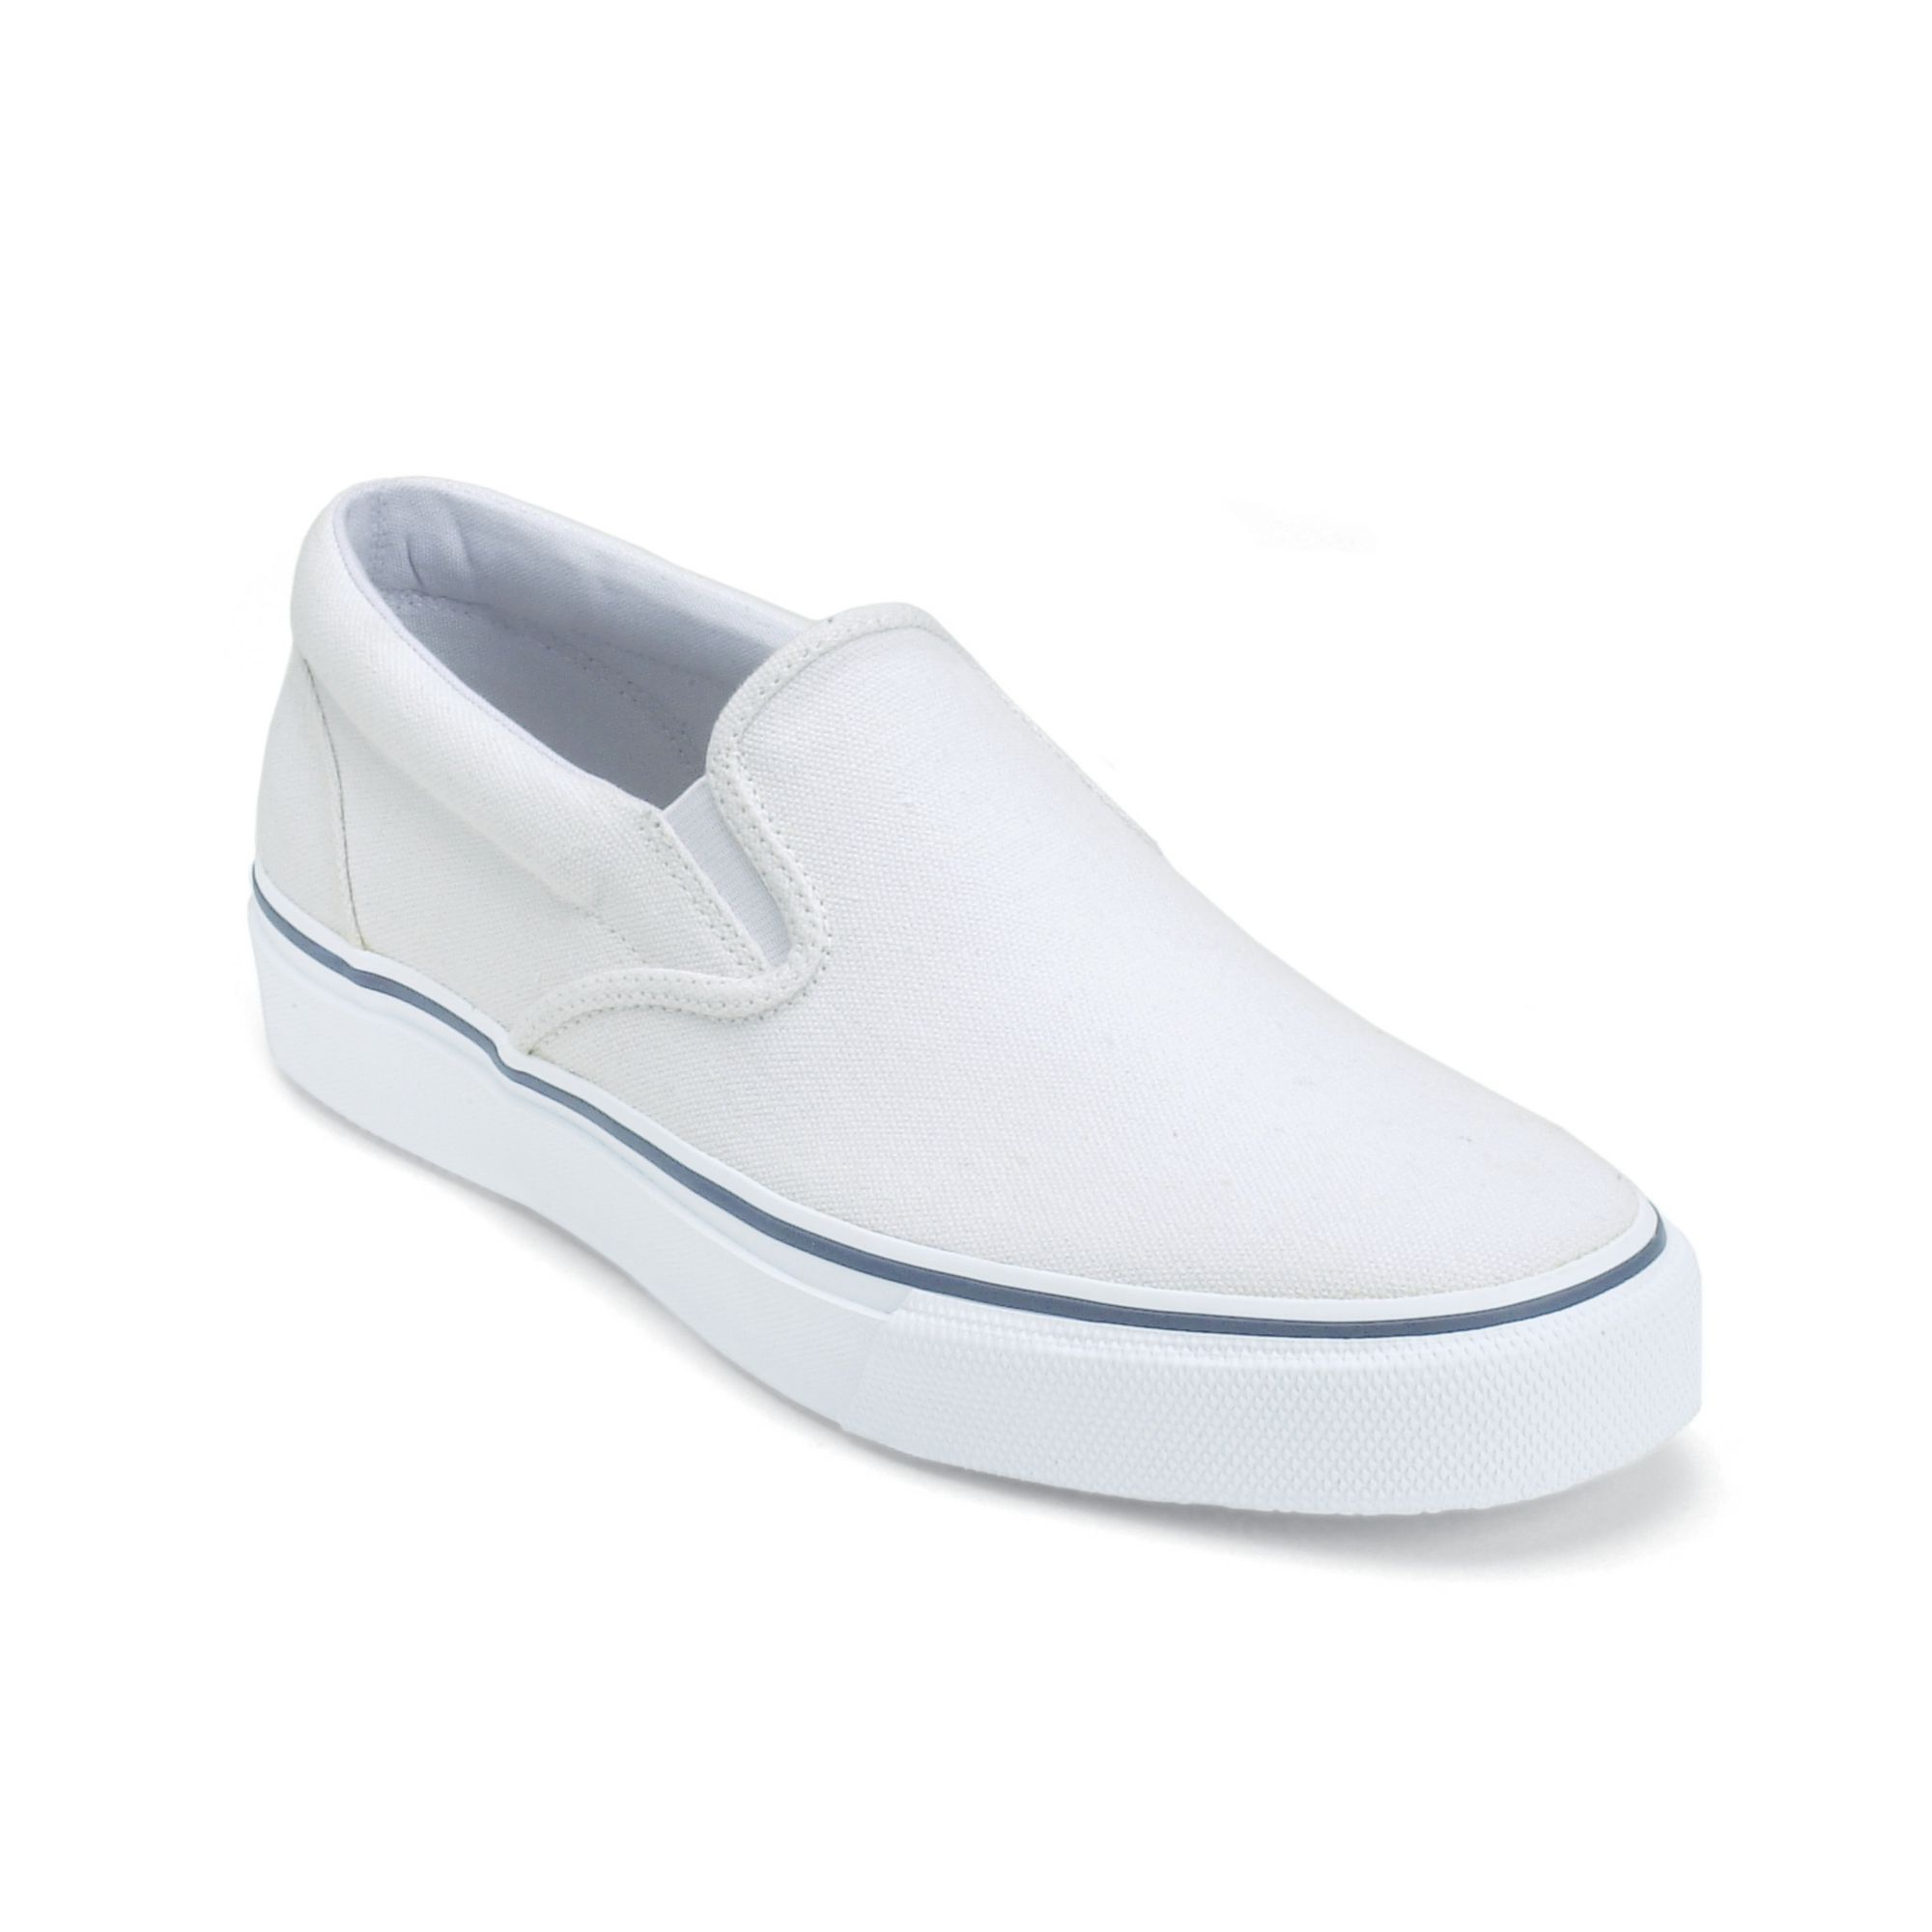 sperry top sider s striper slip on sneakers in white